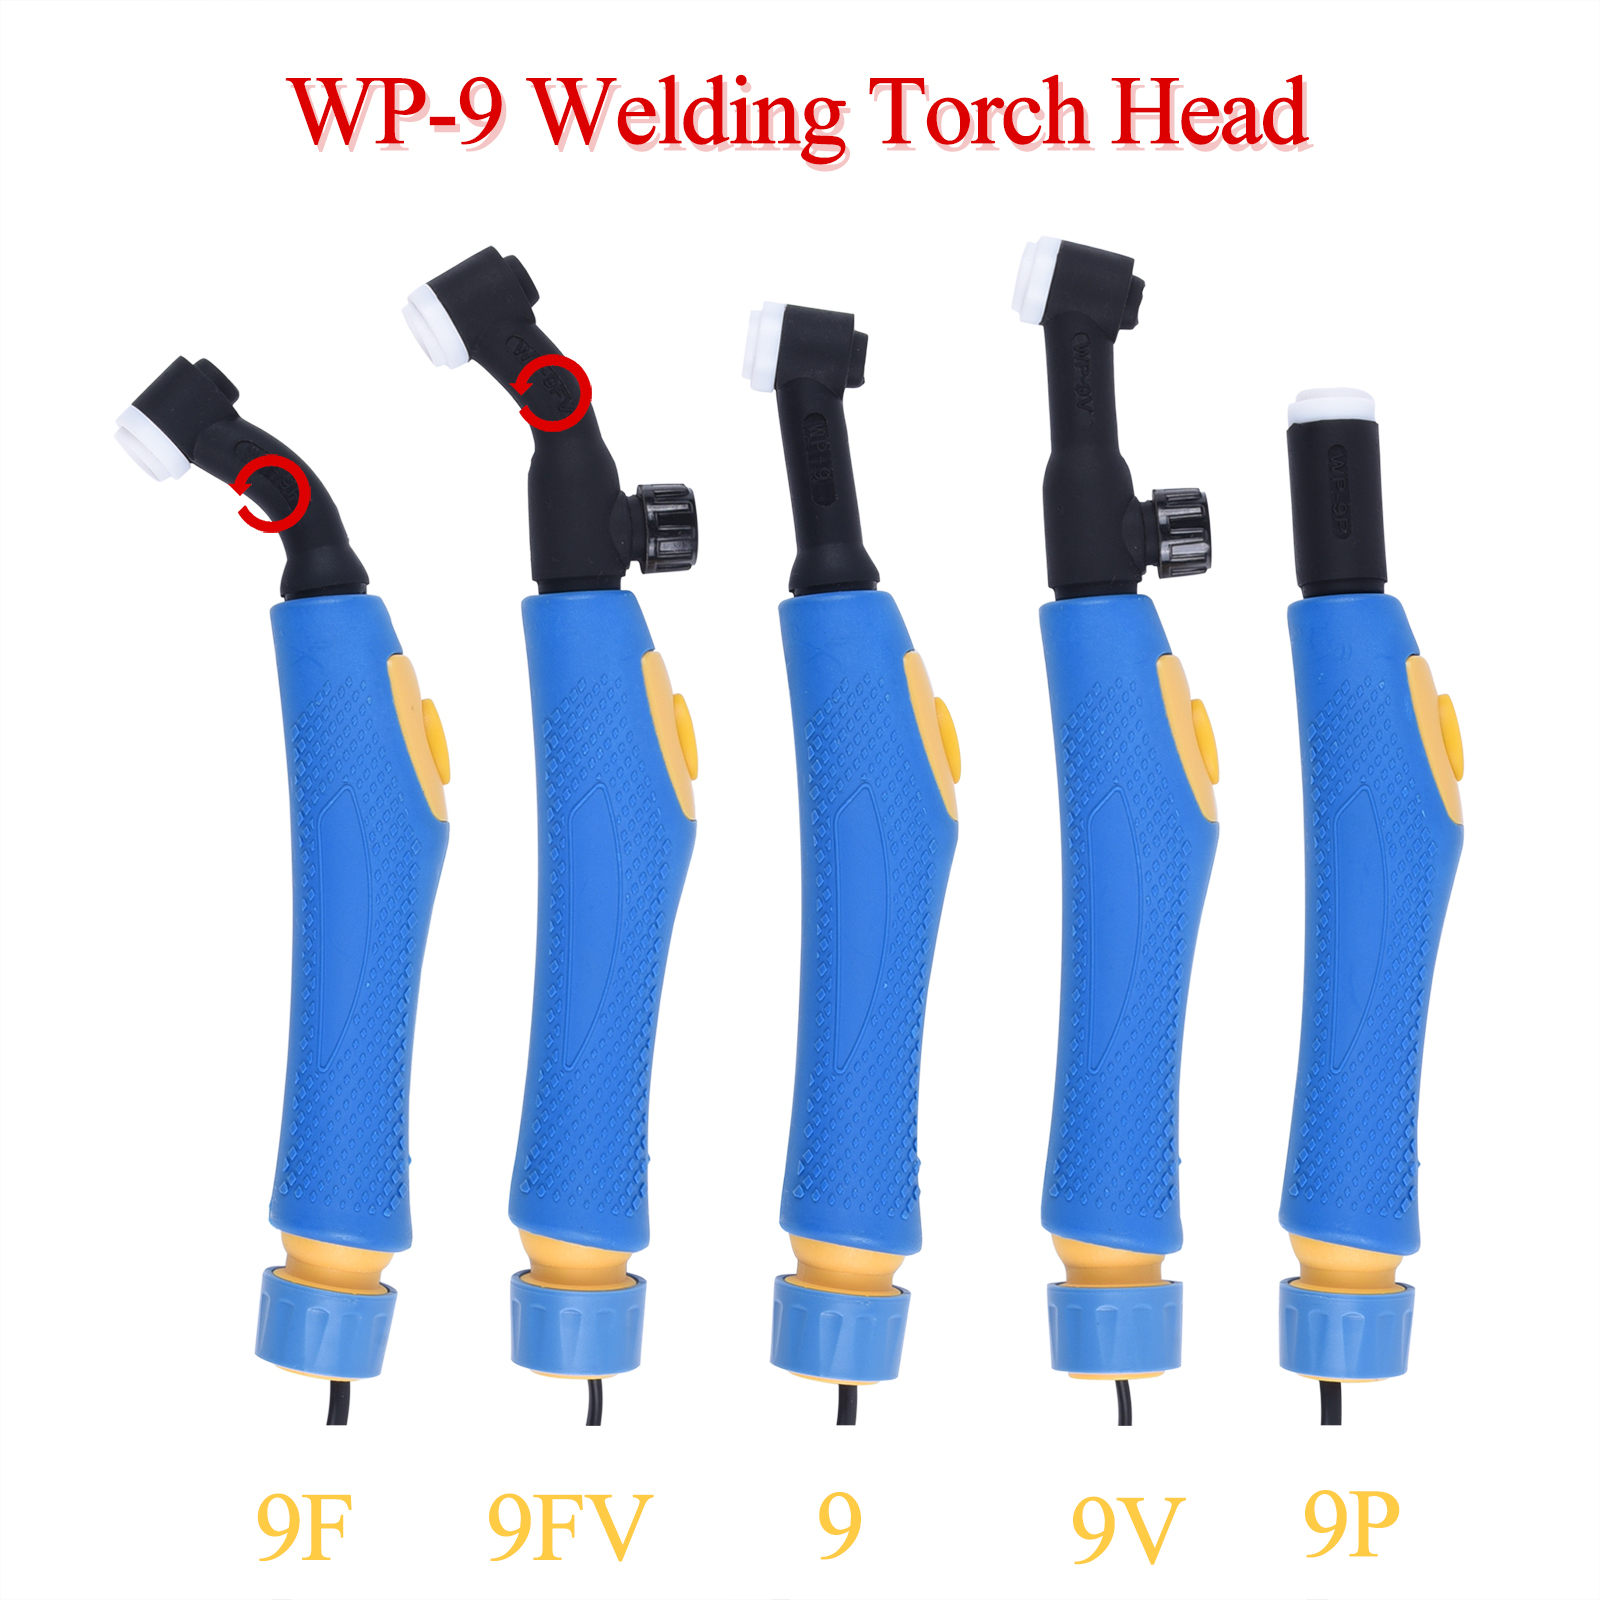 WP9 WP 9F 9F 9V 9FV 9P SR9 SR9F SR9V SR9FV SR9P TIG Torch Body Air Cooled Head Human Engineering Design Rotatable 125 AMP